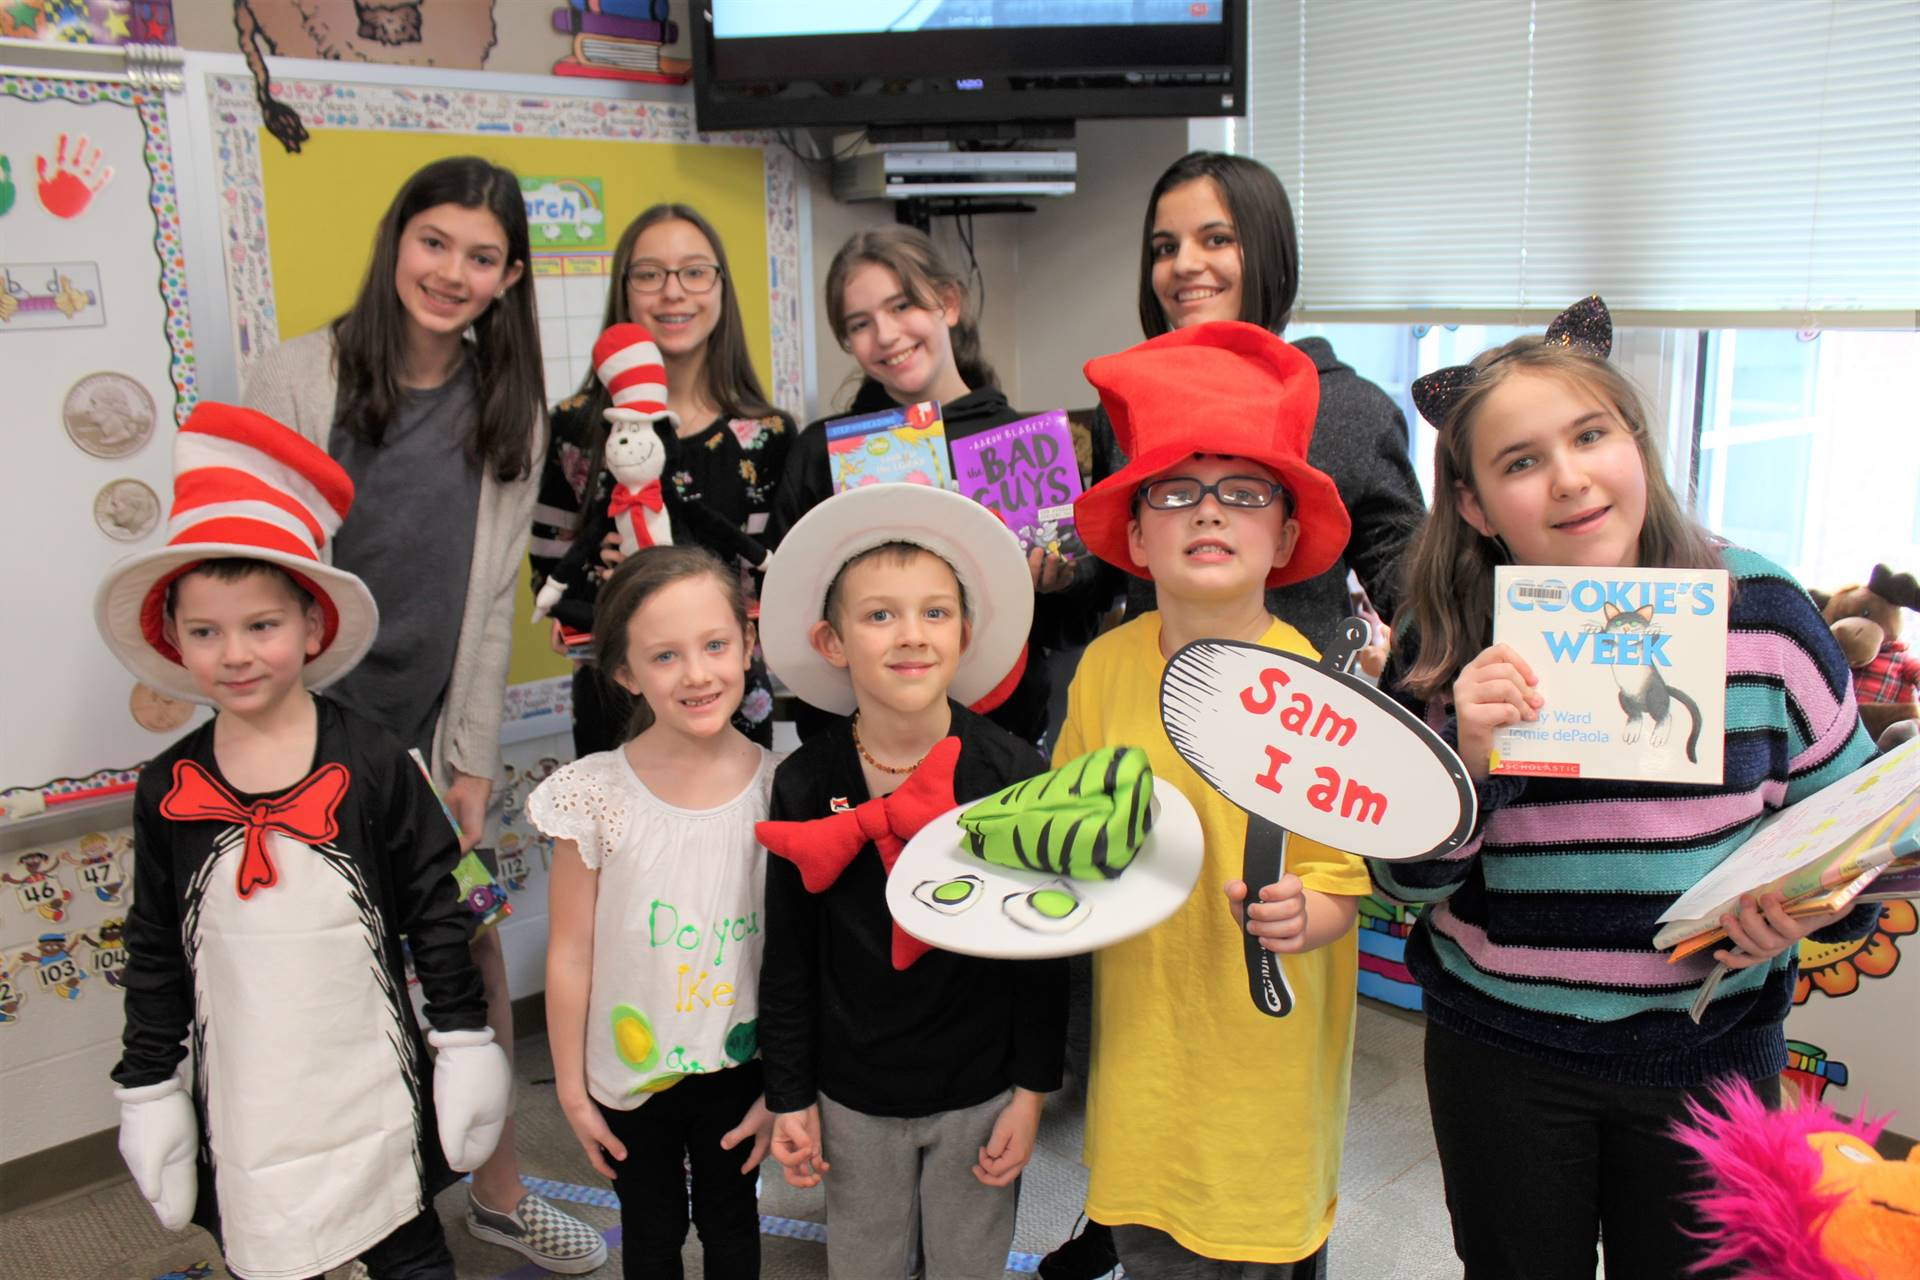 Students dressed like Dr. Seuss characters